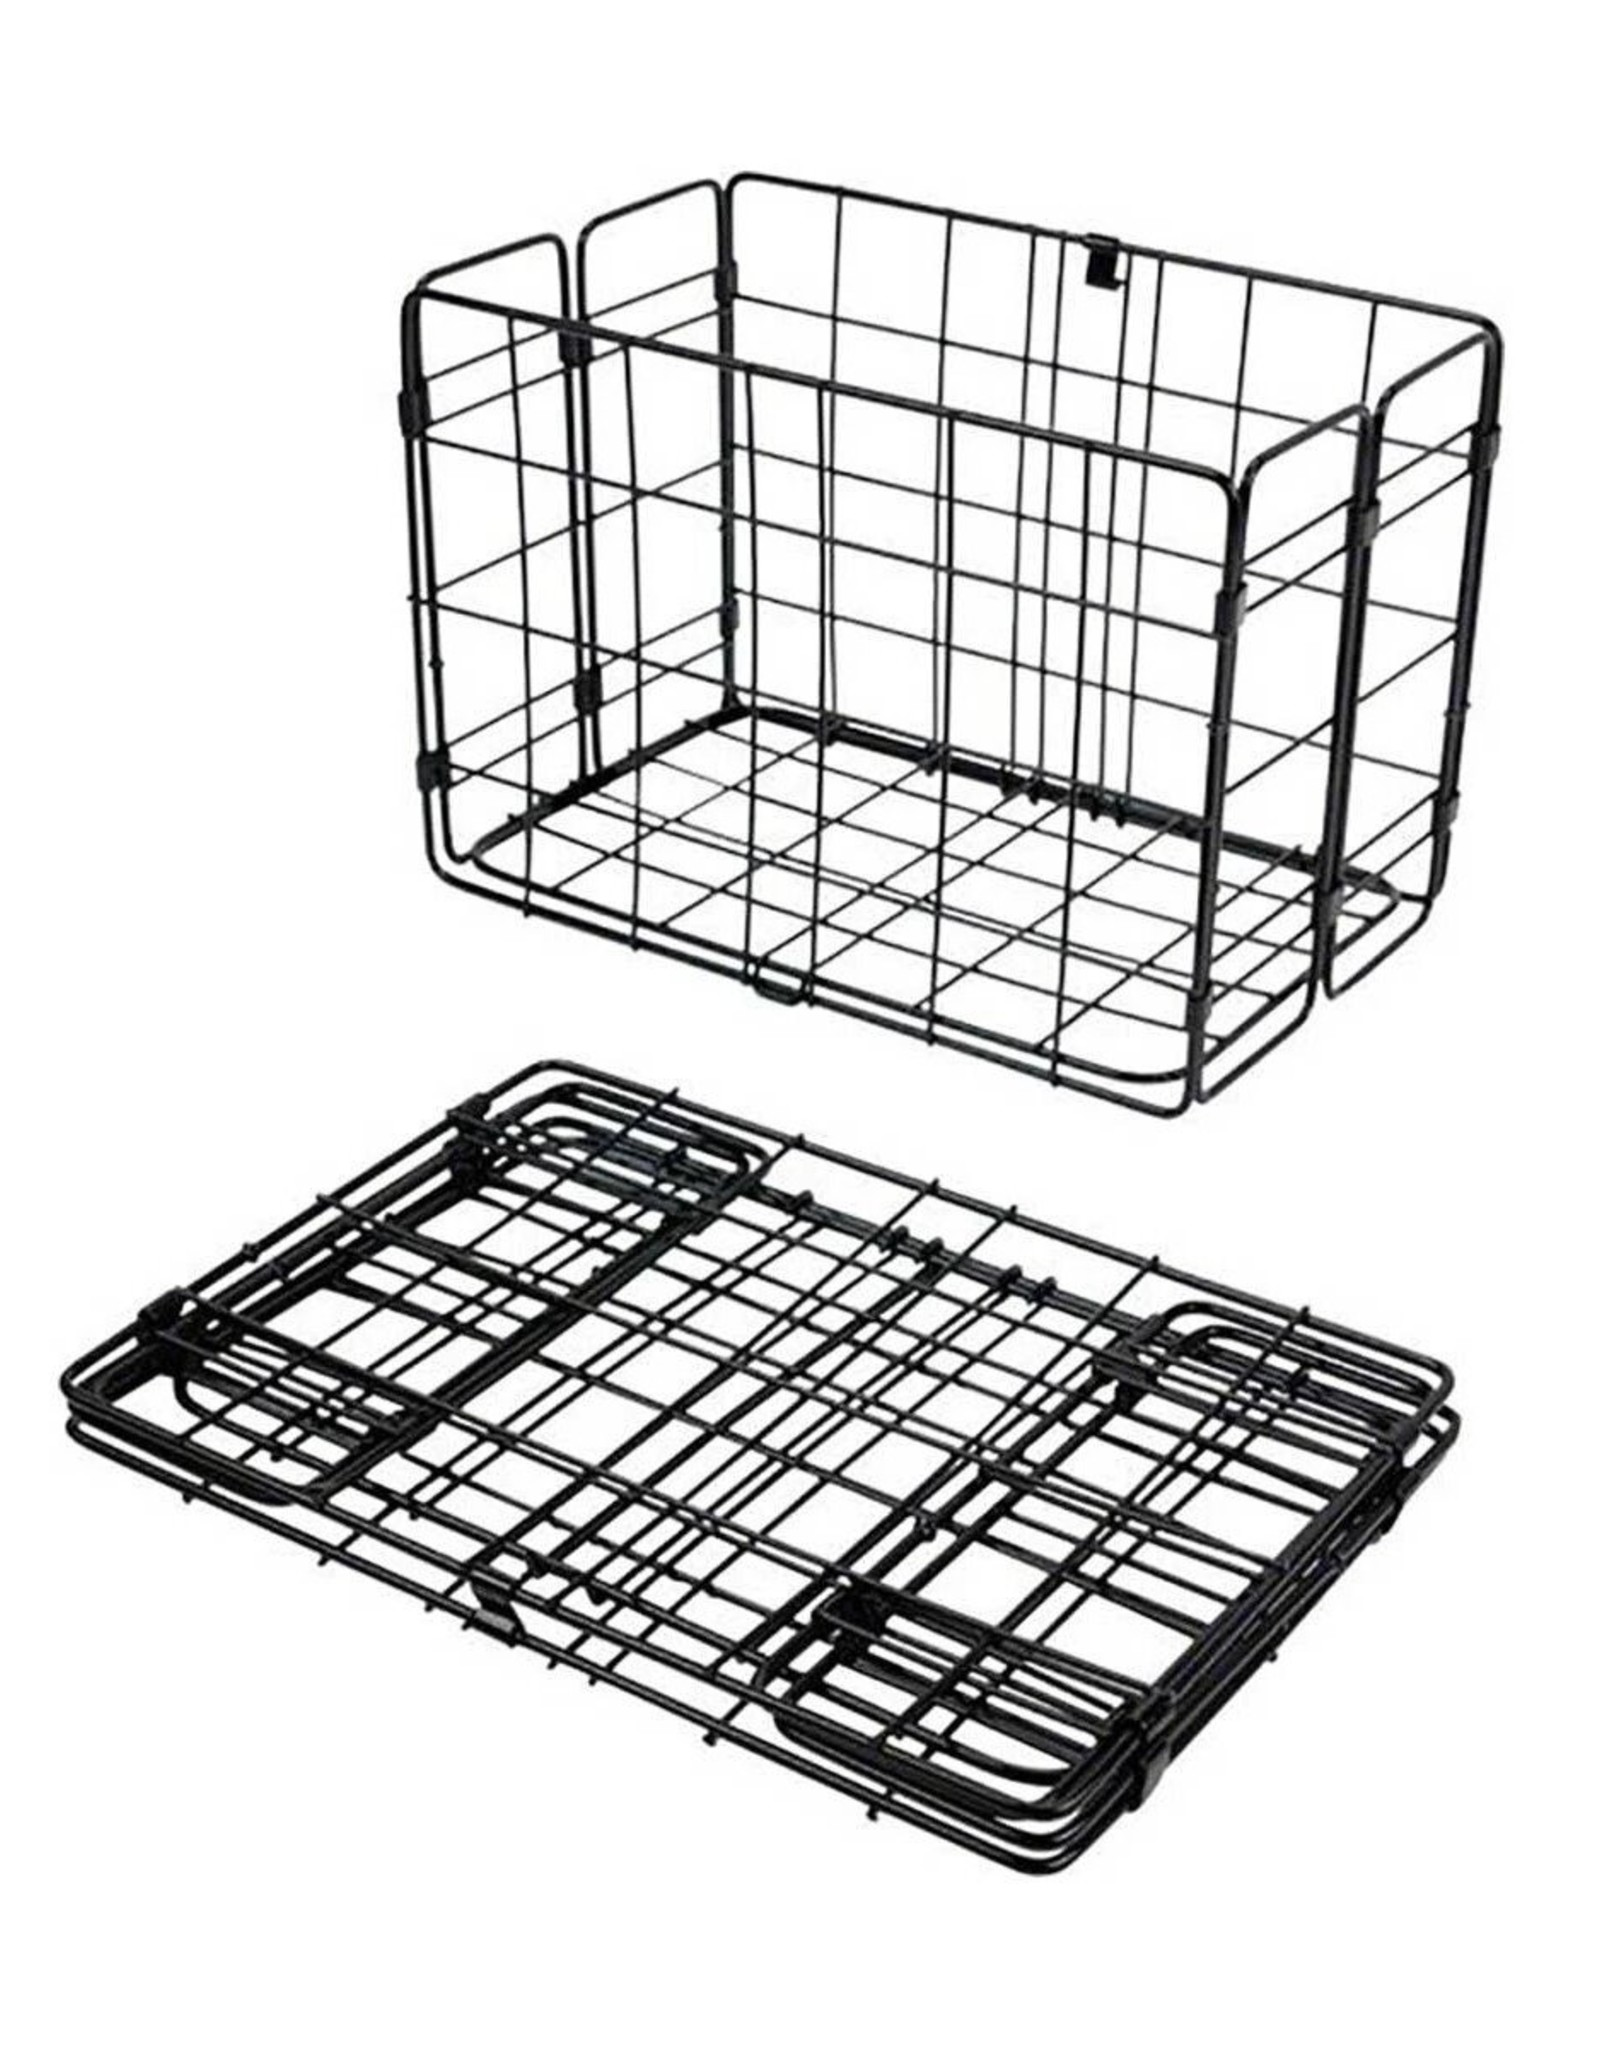 Wald Products Wald Folding Rear Basket